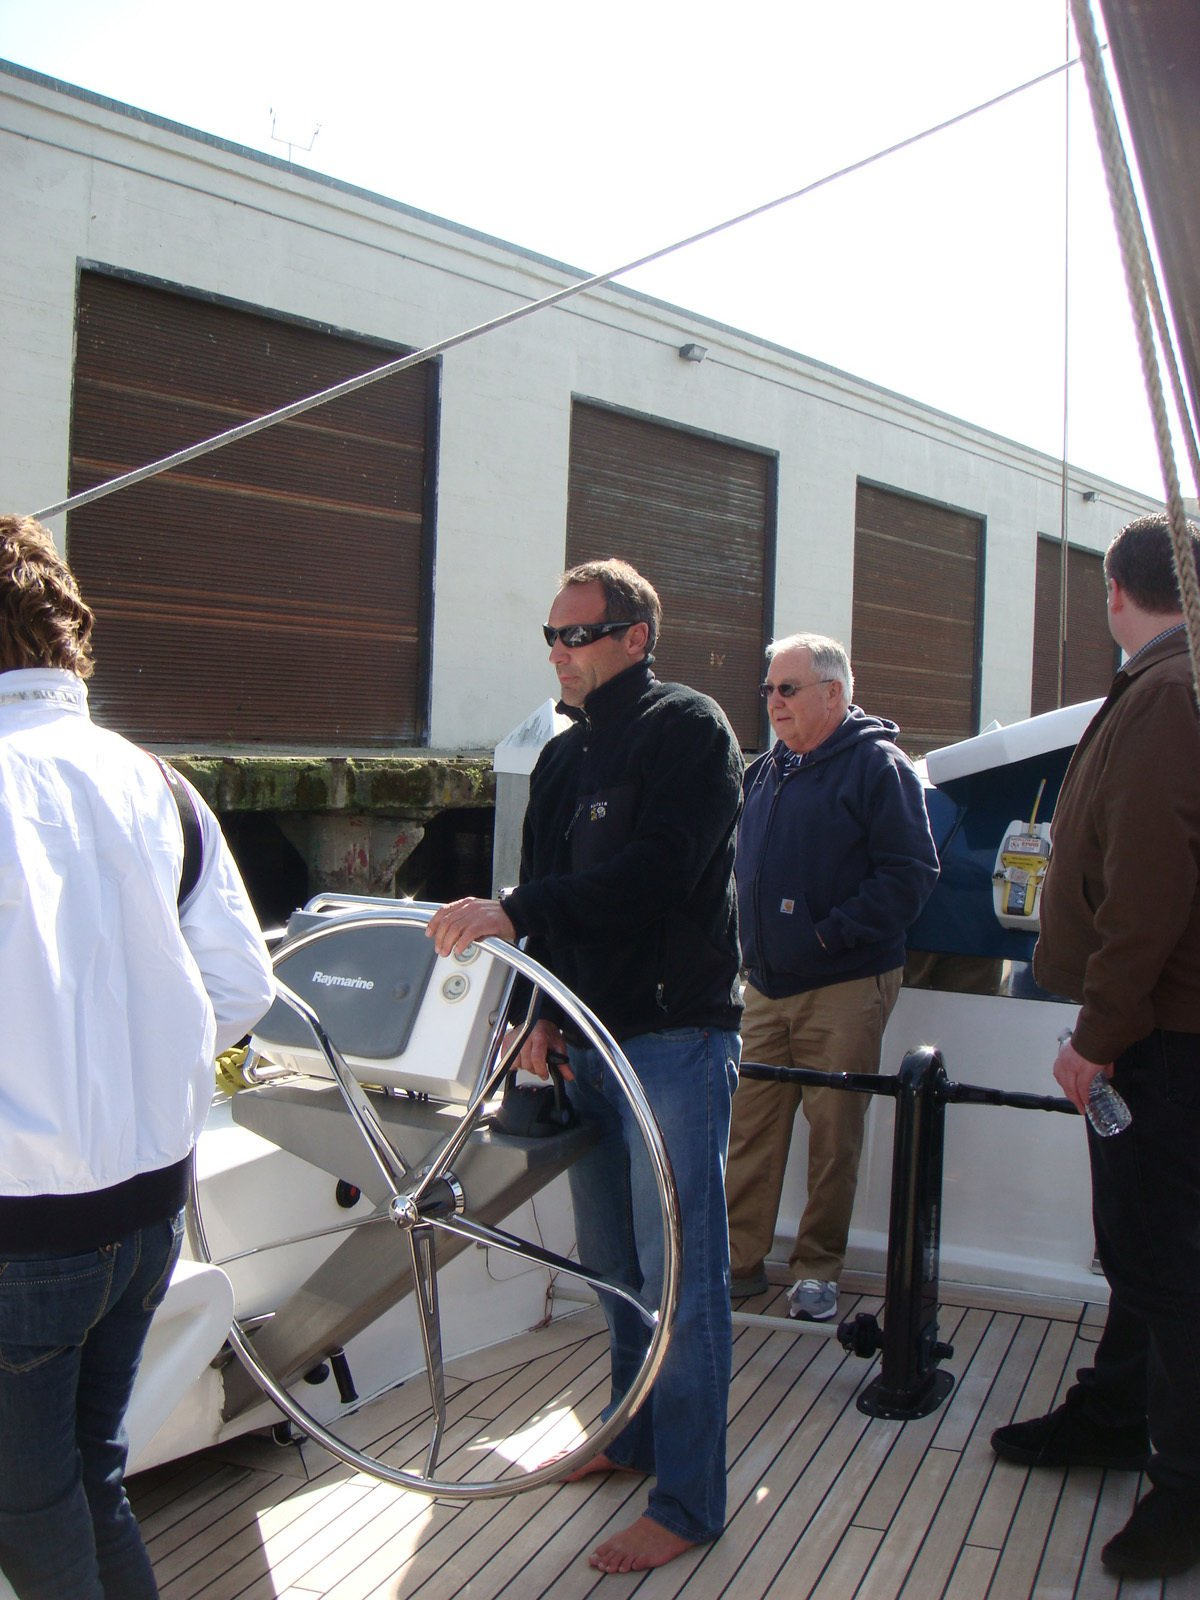 Here's Mike Horn at the helm, steering the 115-foot-long boat out of Pier 40, where it was docked. He's circumnavigated the globe five times and his crew of two others arrived in San Francisco from Japan, a harrowing journey as they were caught in the tsunami.  Photo 6 of 7 in Friday Finds 4.22.11